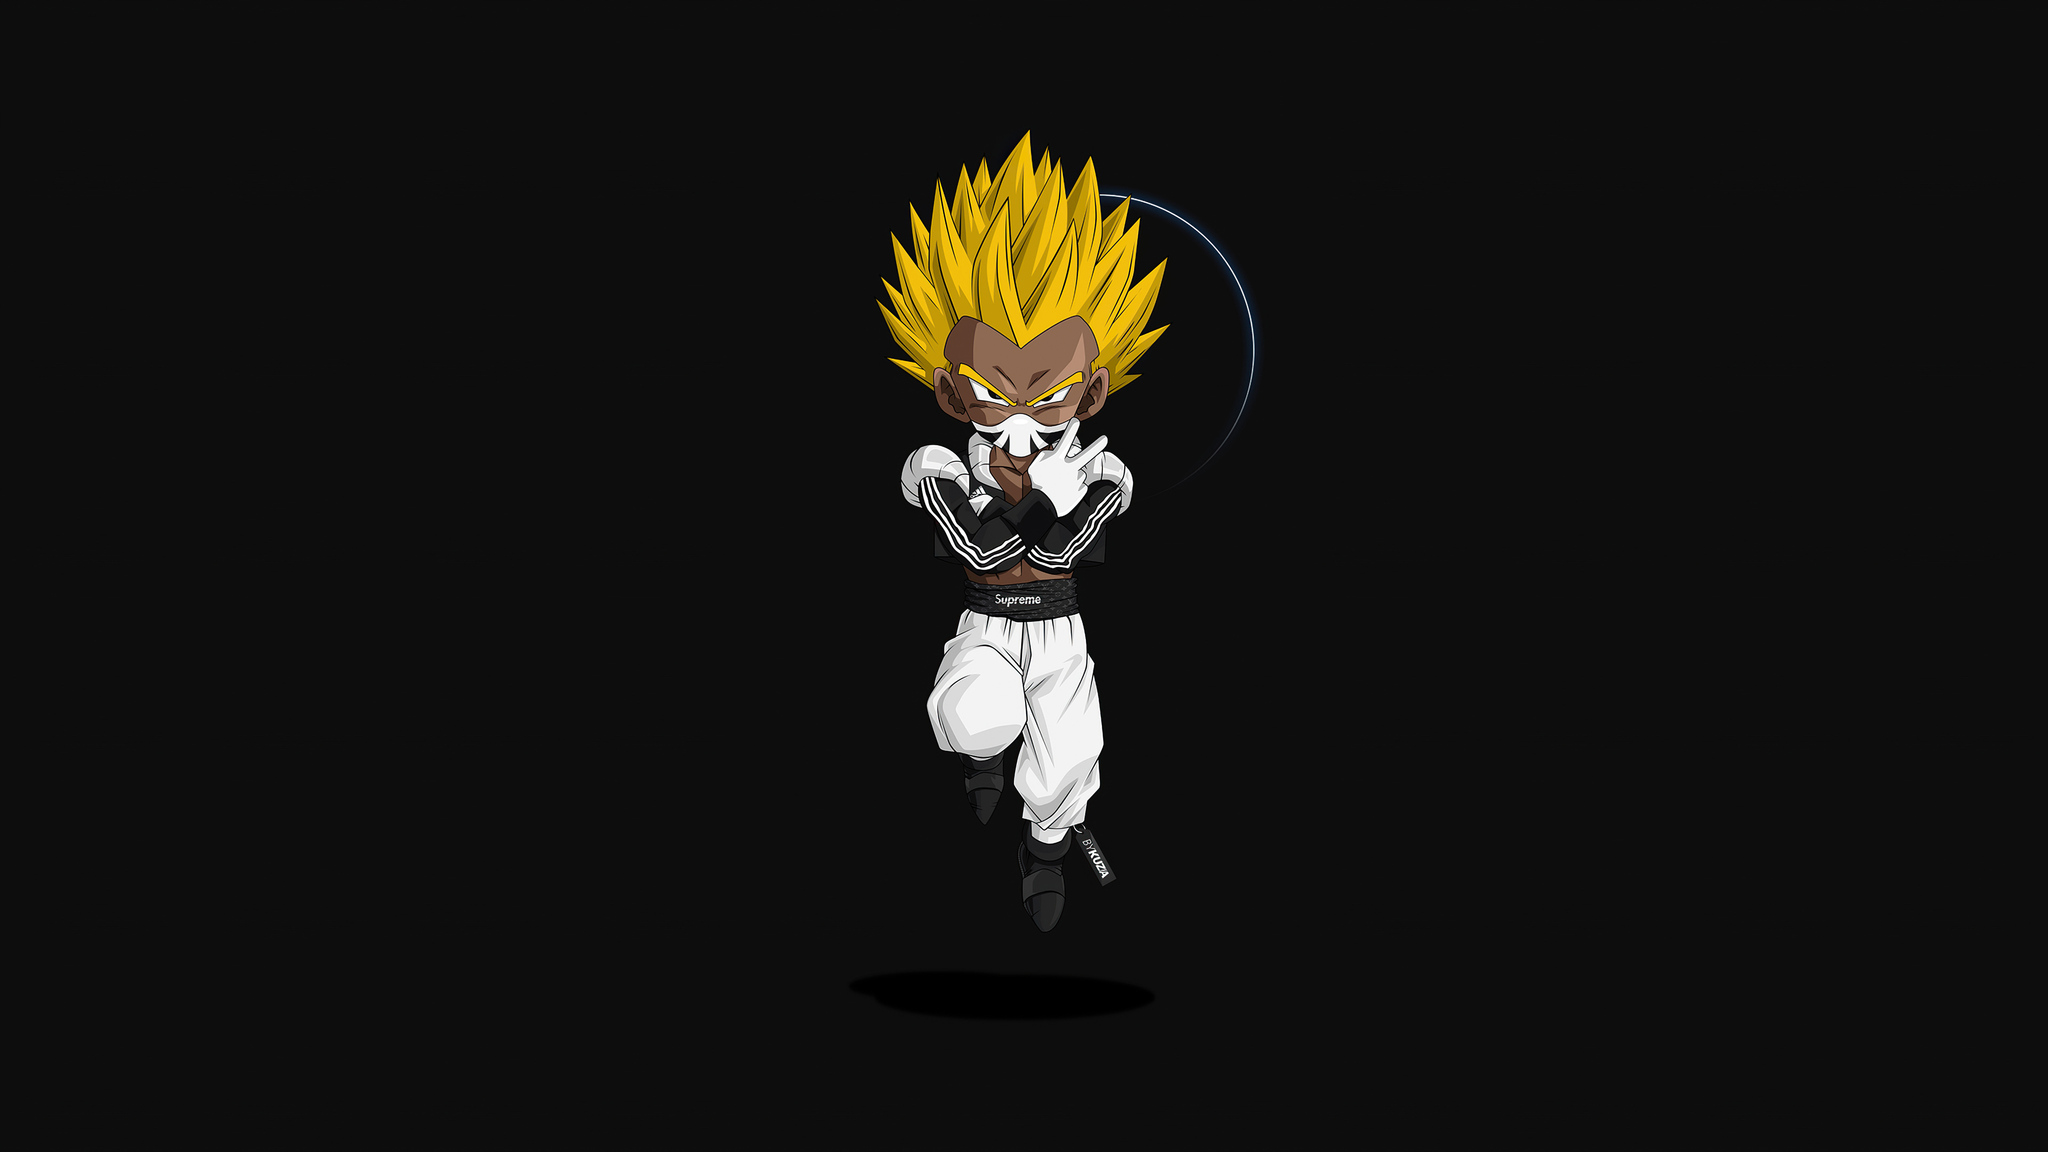 2048x1152 Gotenks Dragon Ball Z 2048x1152 Resolution Hd 4k Wallpapers Images Backgrounds Photos And Pictures